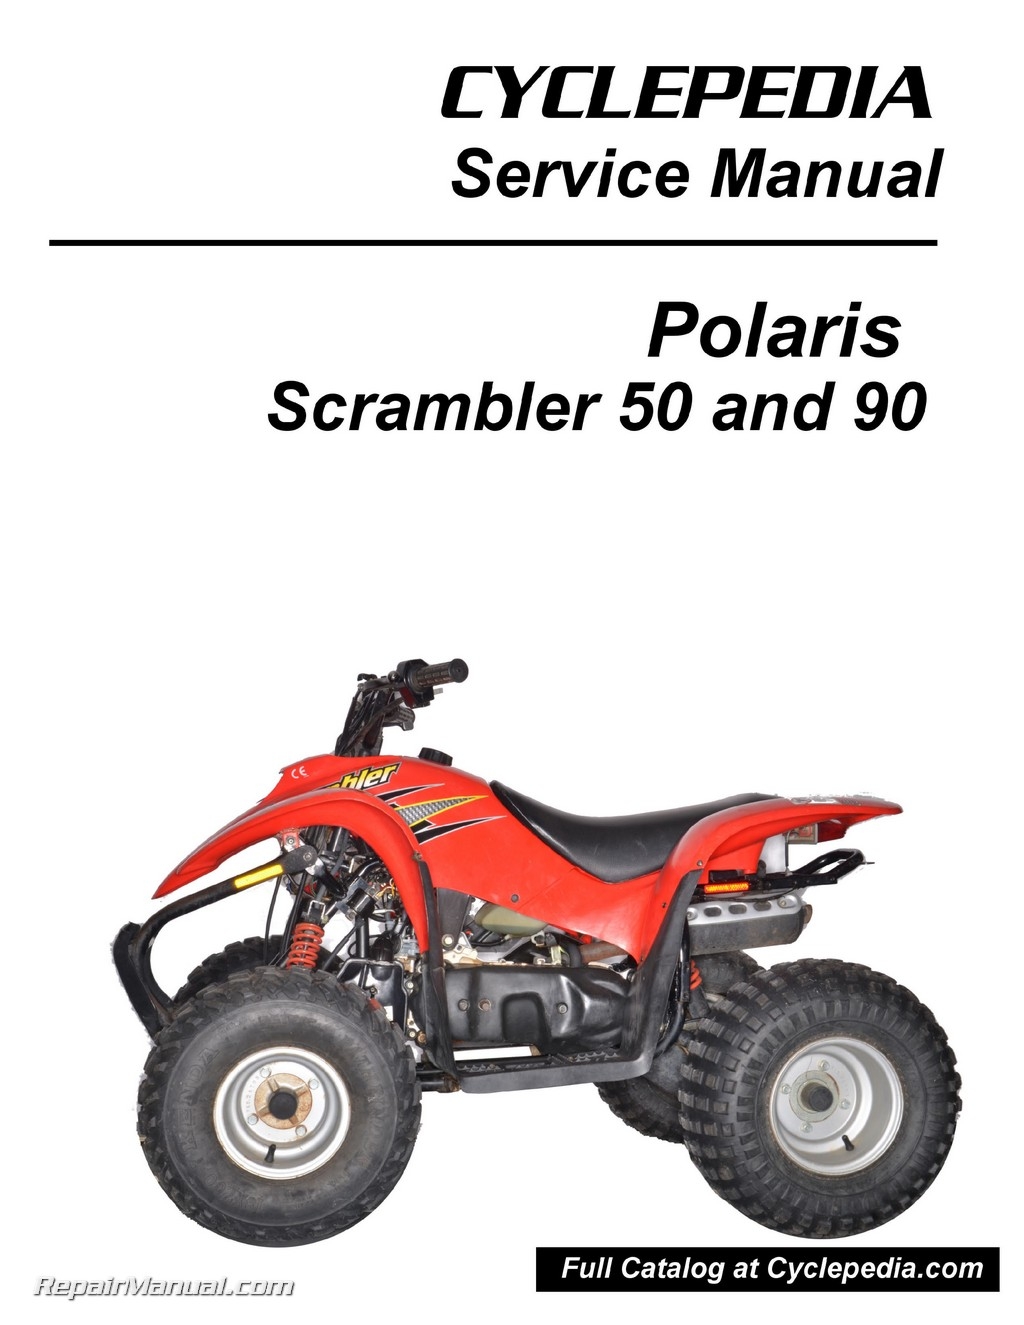 Arctic Cat 375 Atv Wiring Diagram 2002 400 Service Manual Various Owner Guide Polaris 50cc 90cc Scrambler Print By Cyclepedia Rh Repairmanual Com Vin